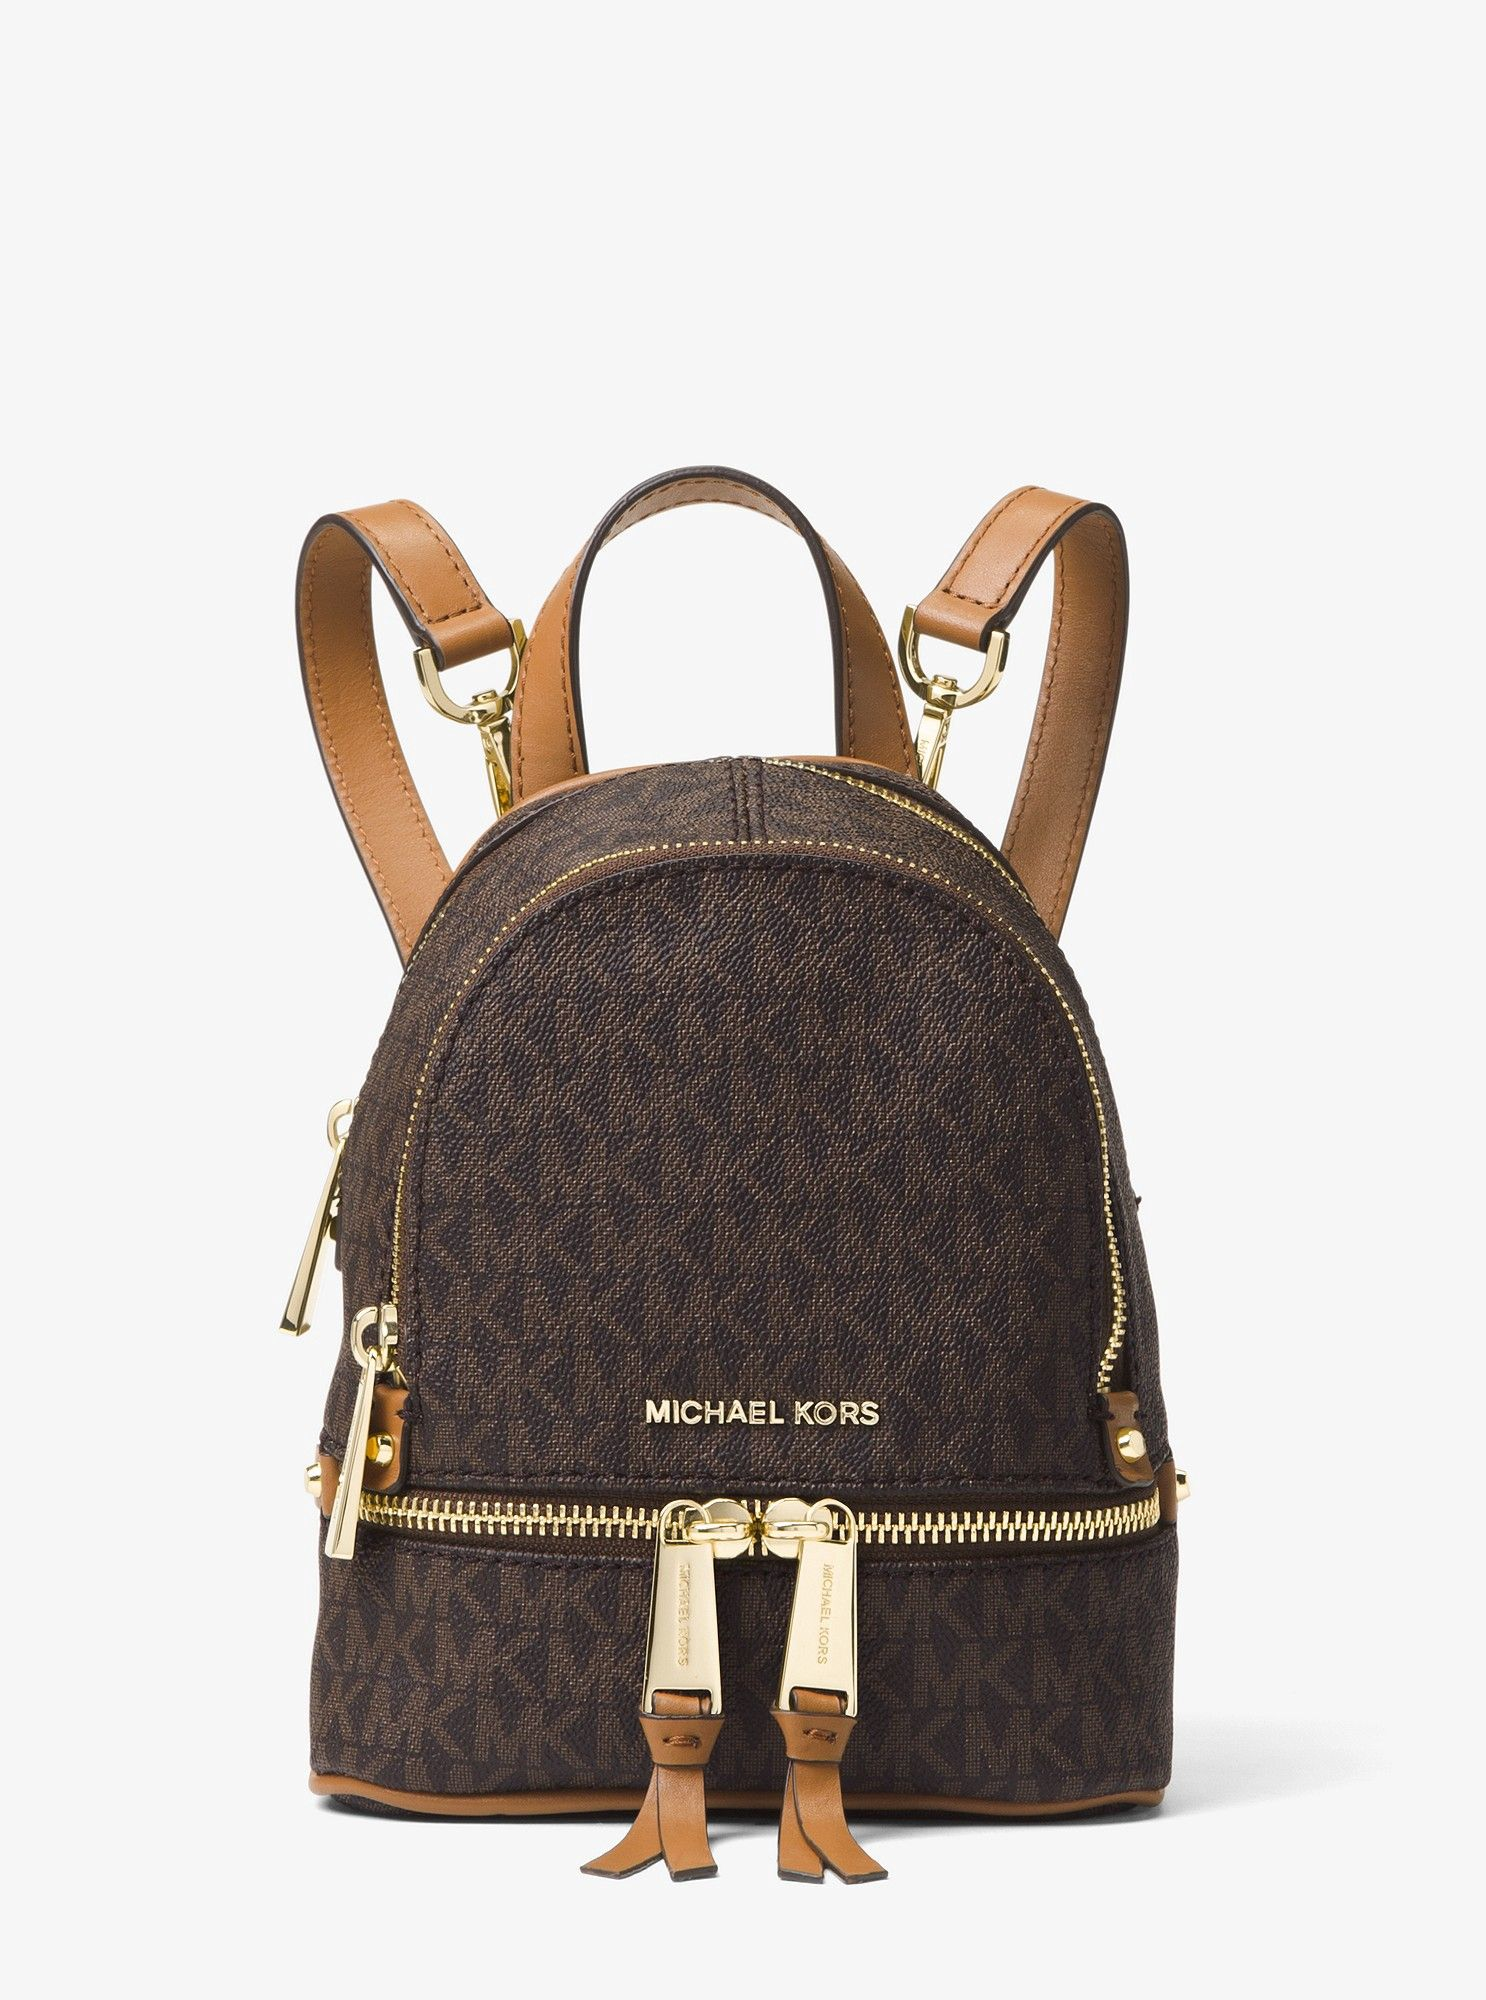 474fae57270b Michael Kors Rhea Mini Logo Backpack - Brown in 2019 | Products ...